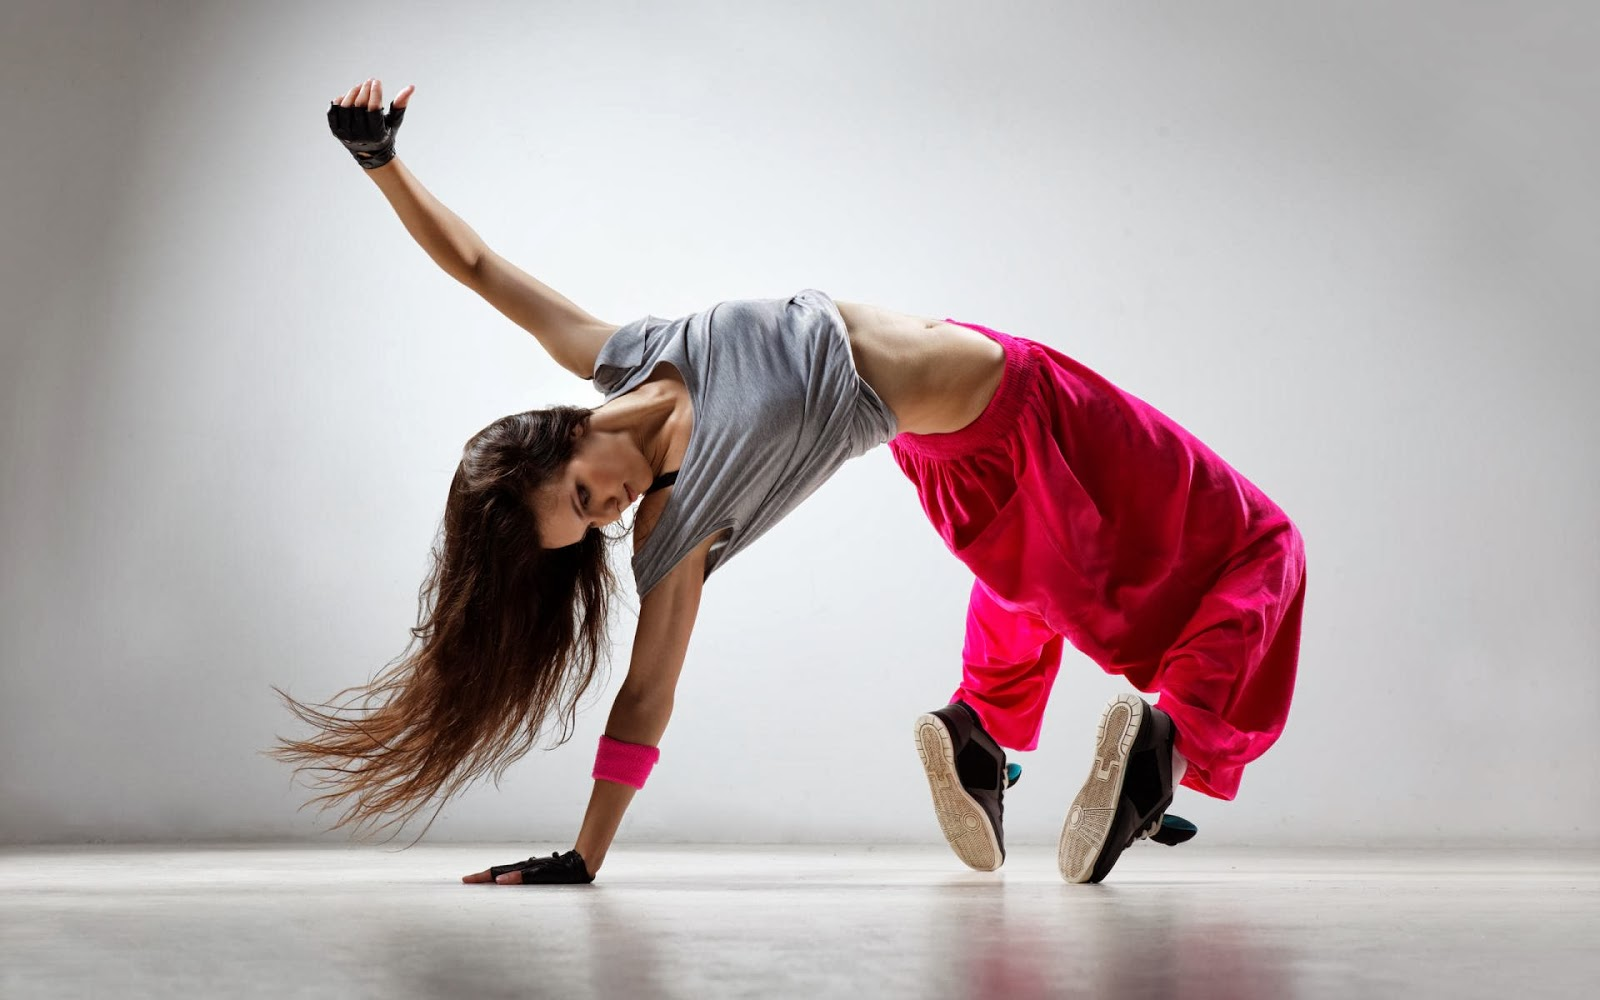 ... danced to hip hop music that evolved from the hip hop culture hip